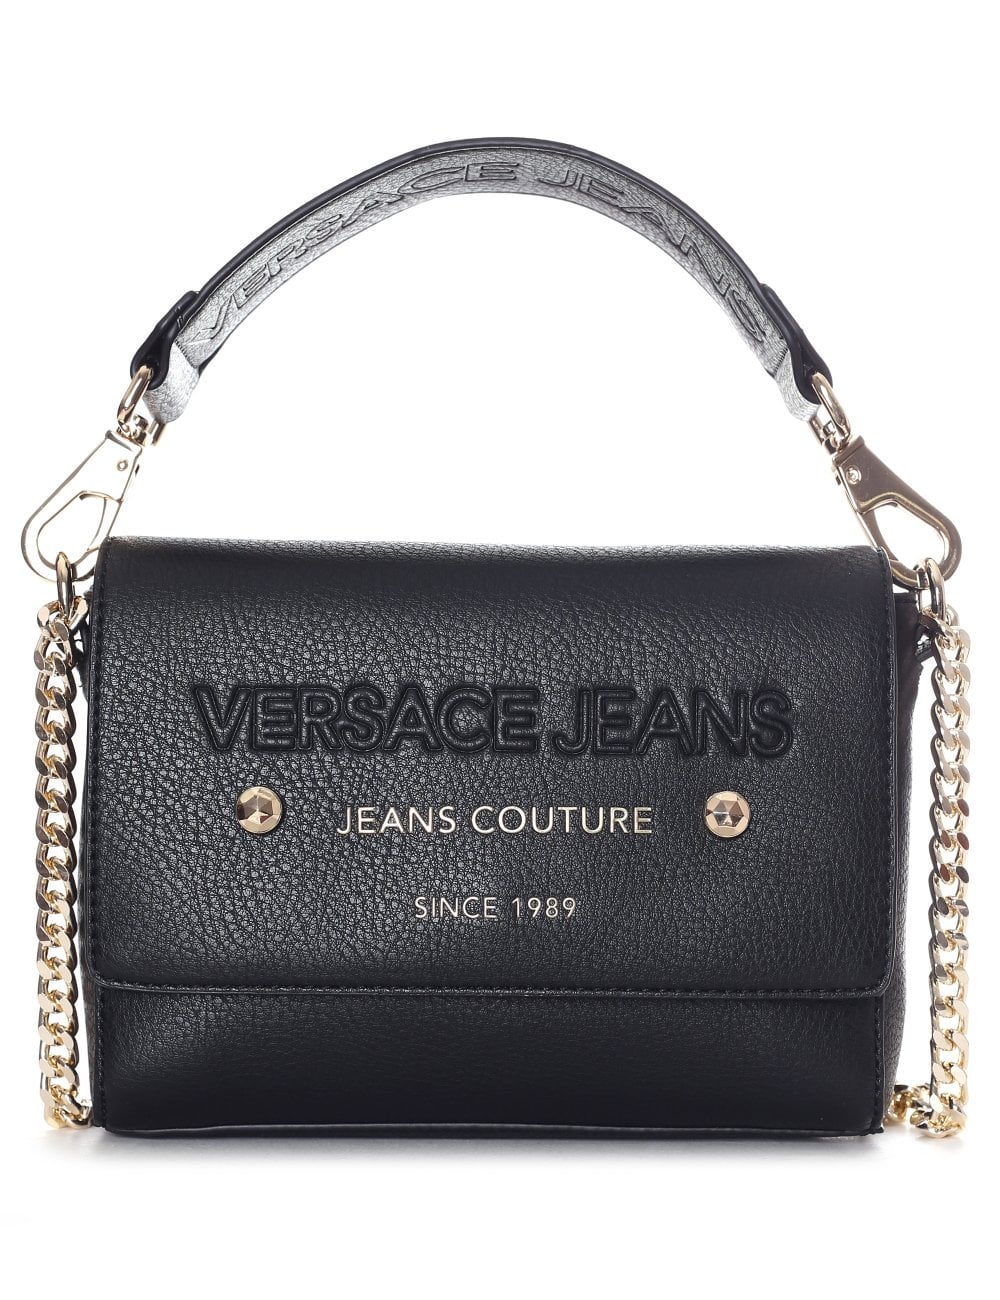 17e30832f1 Versace Jeans Women s Couture Shoulder Bag